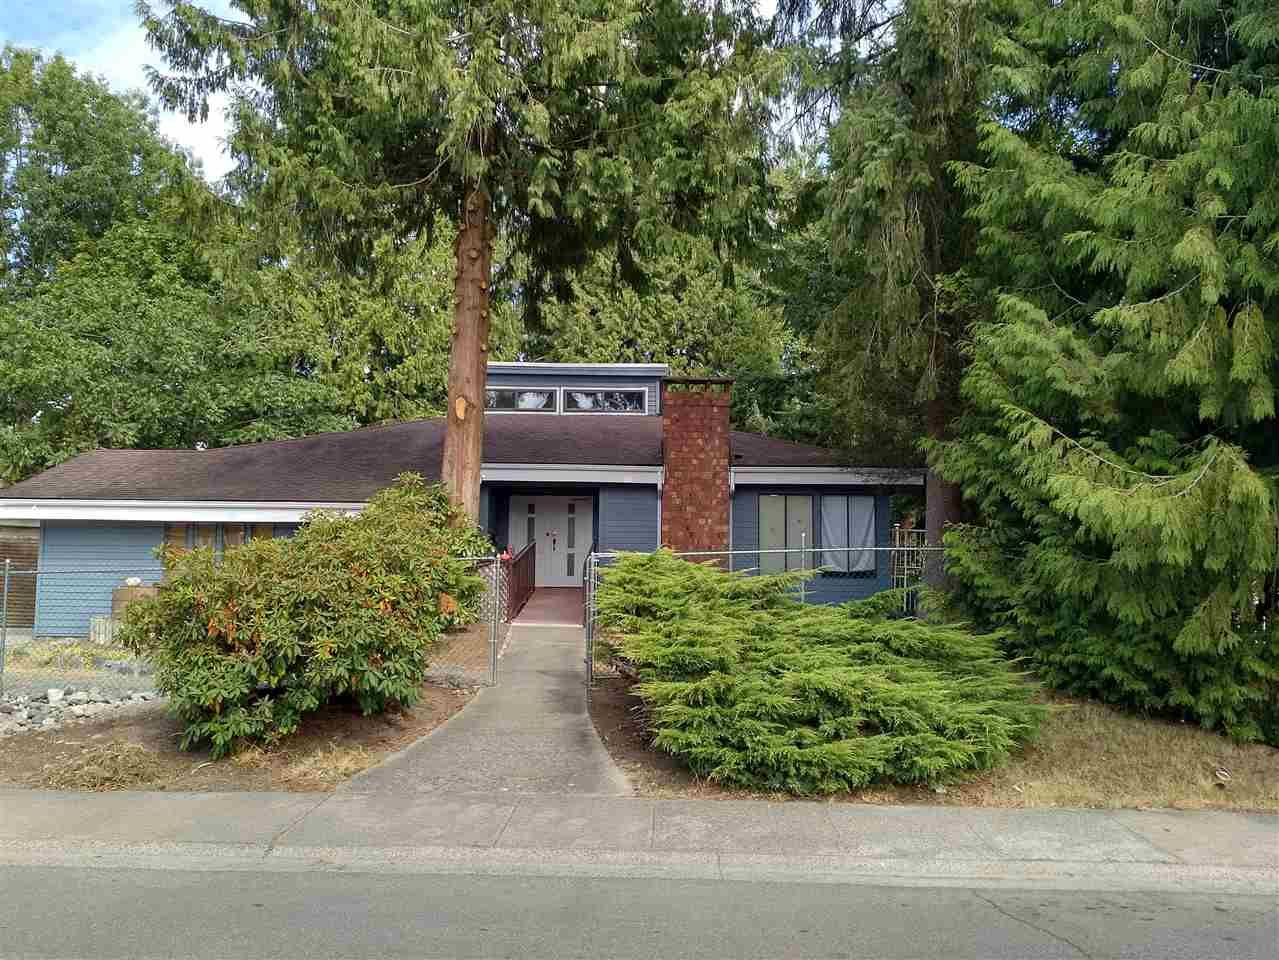 Main Photo: 15713 97 Avenue in Surrey: Guildford House for sale (North Surrey)  : MLS®# R2198134